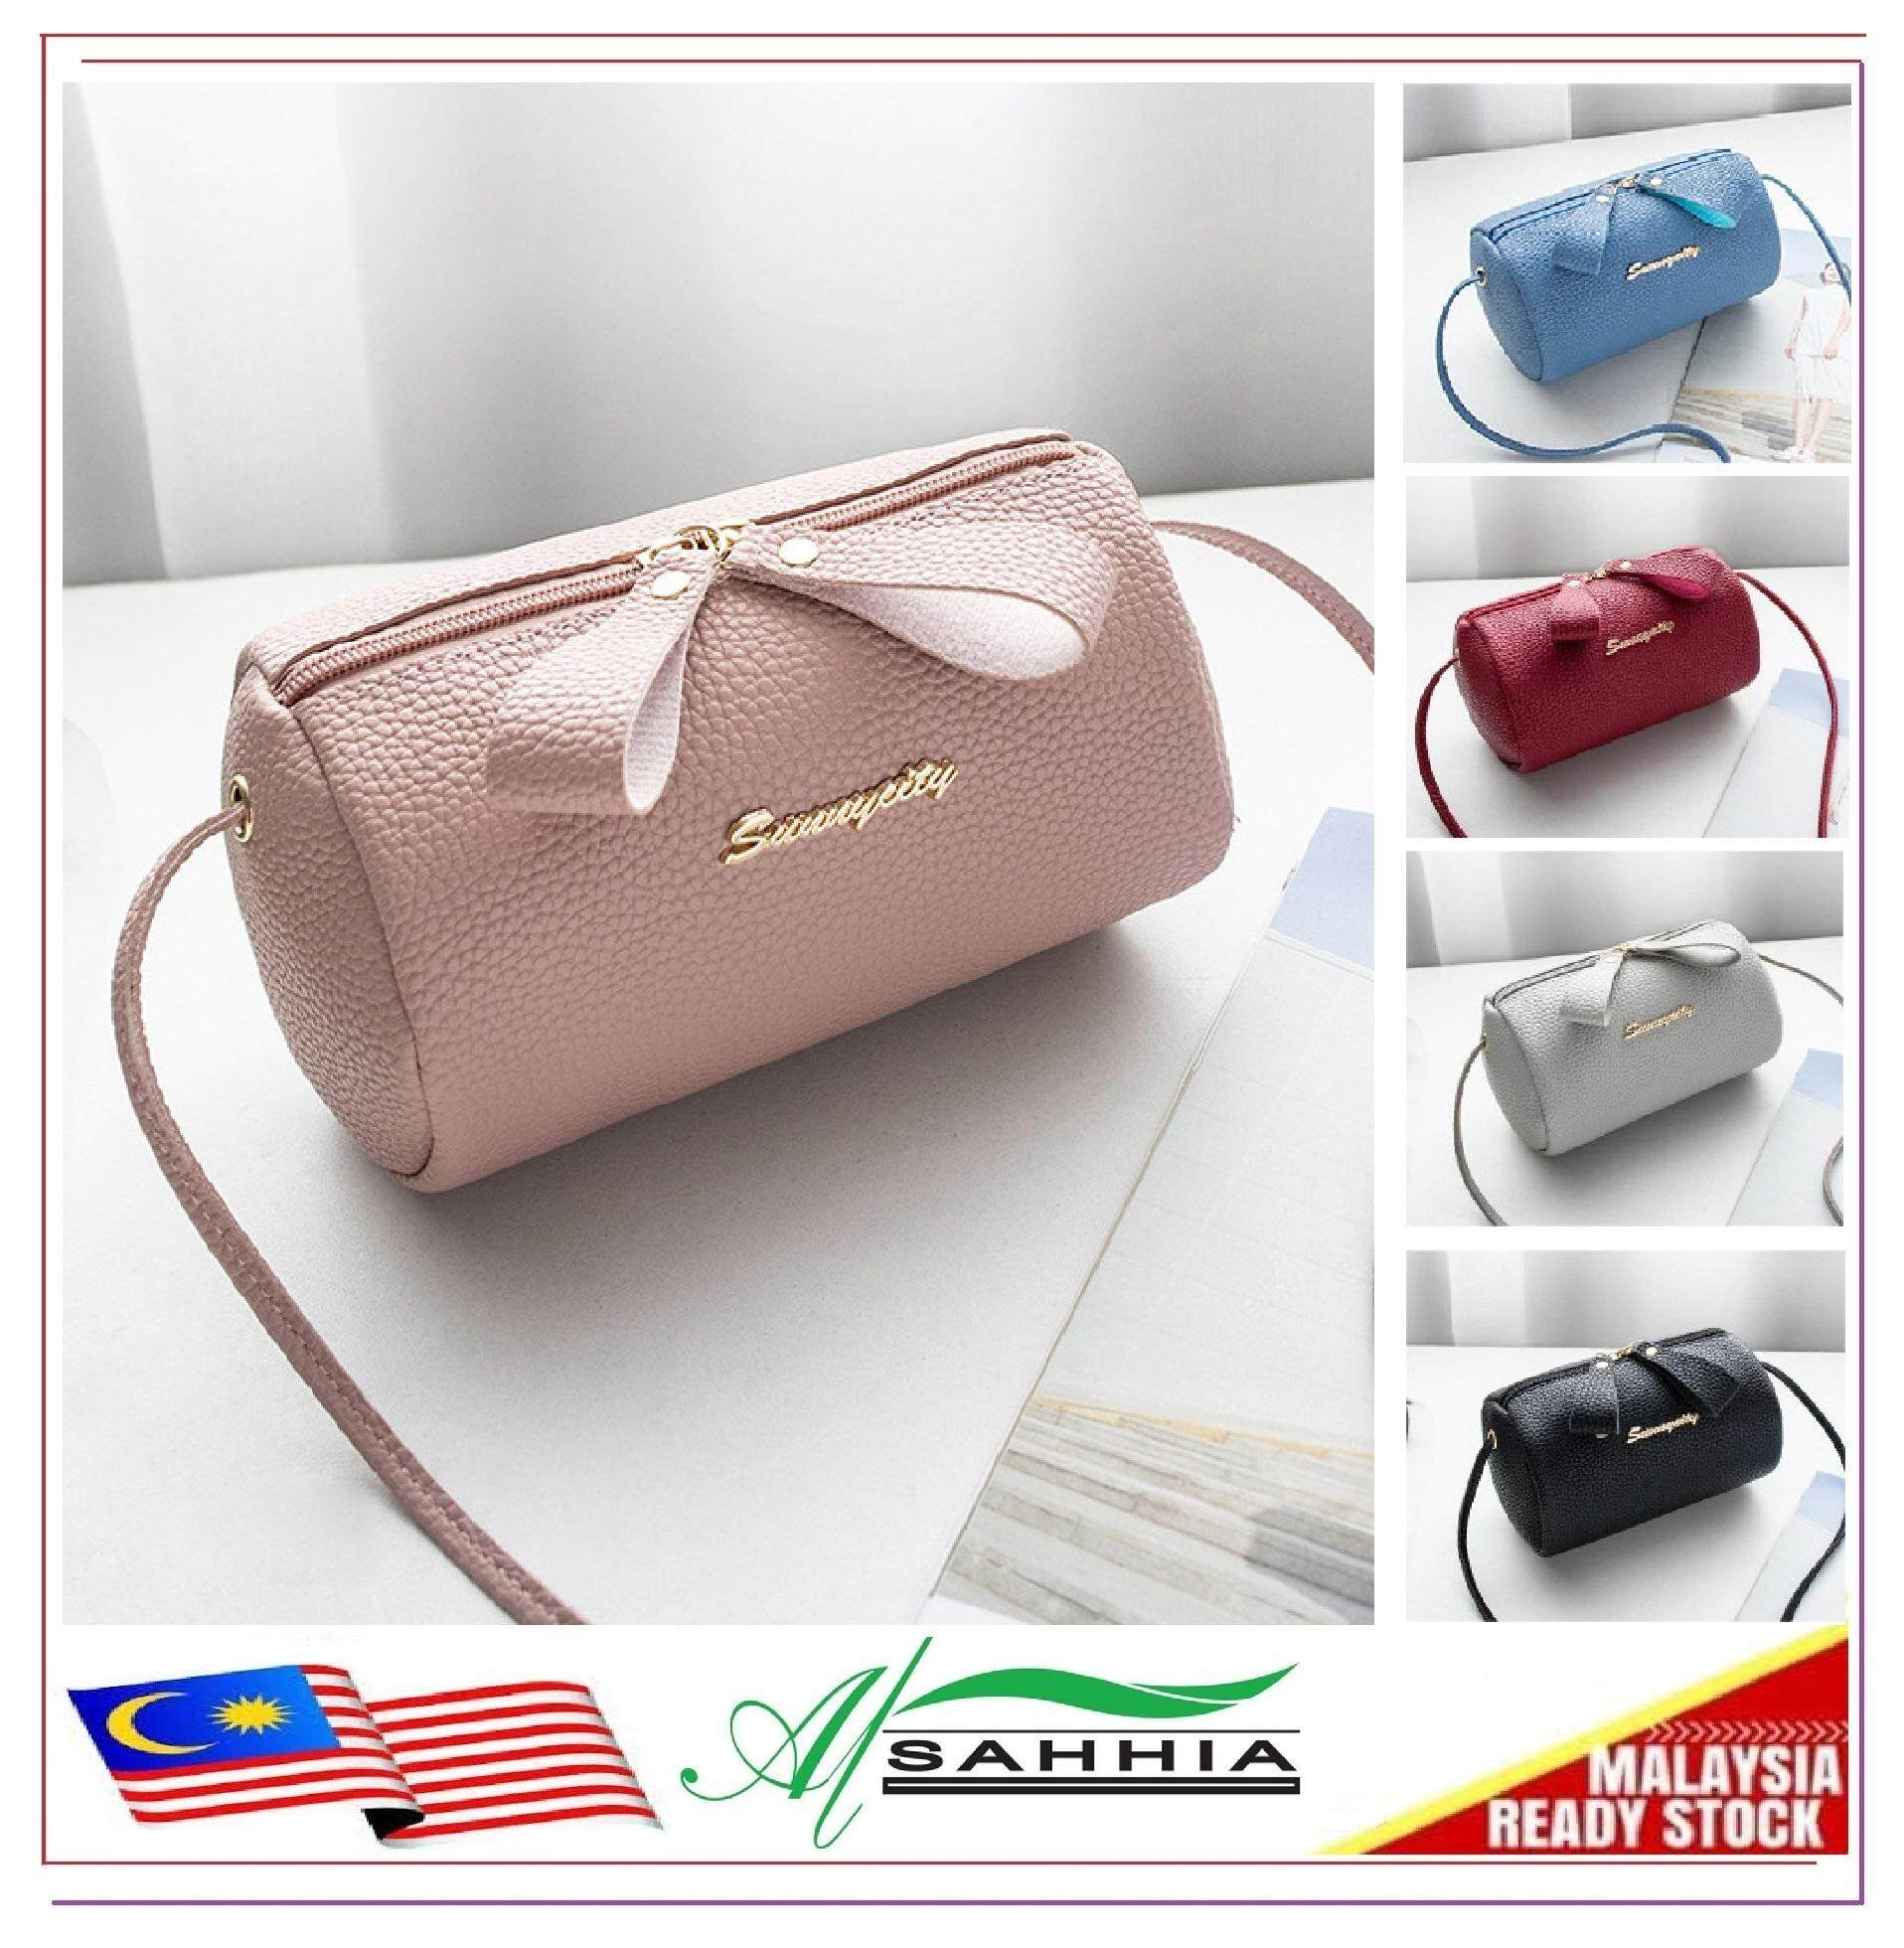 f31a88056c81 Latest Women s Bags Only on Lazada Malaysia!